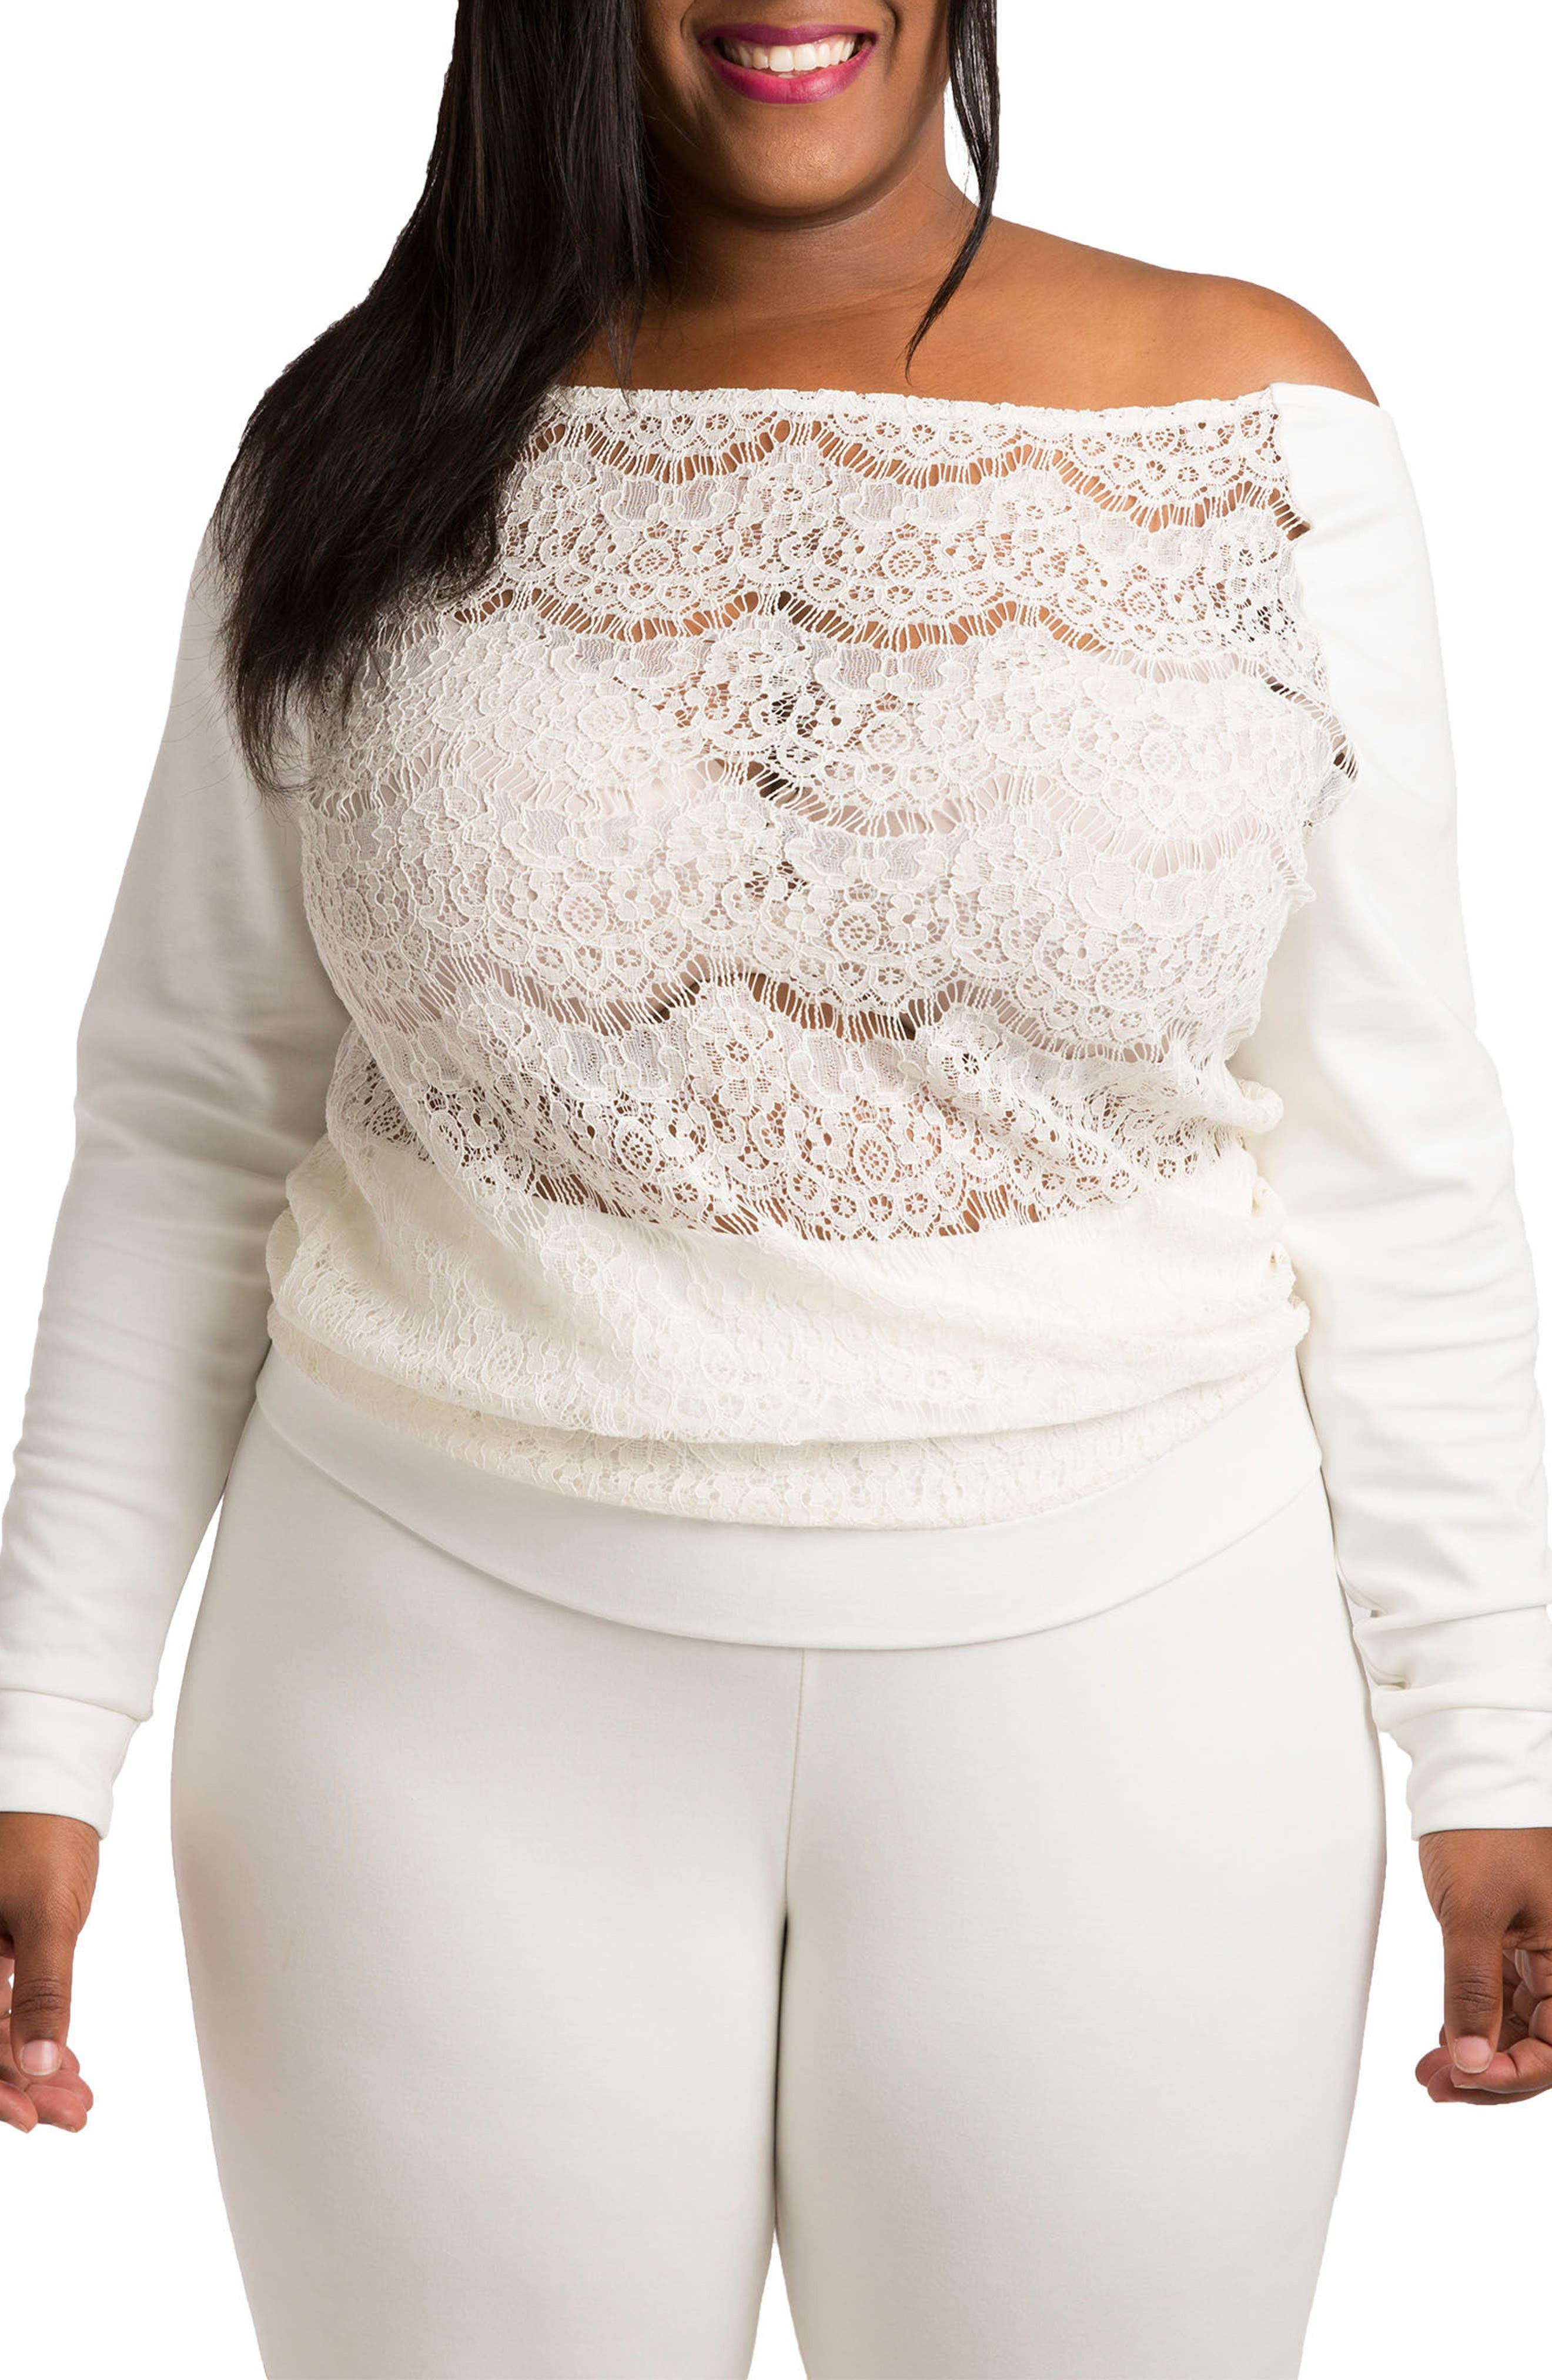 POETIC JUSTICE,                             Lace & Ponte Knit Top,                             Main thumbnail 1, color,                             WHITE